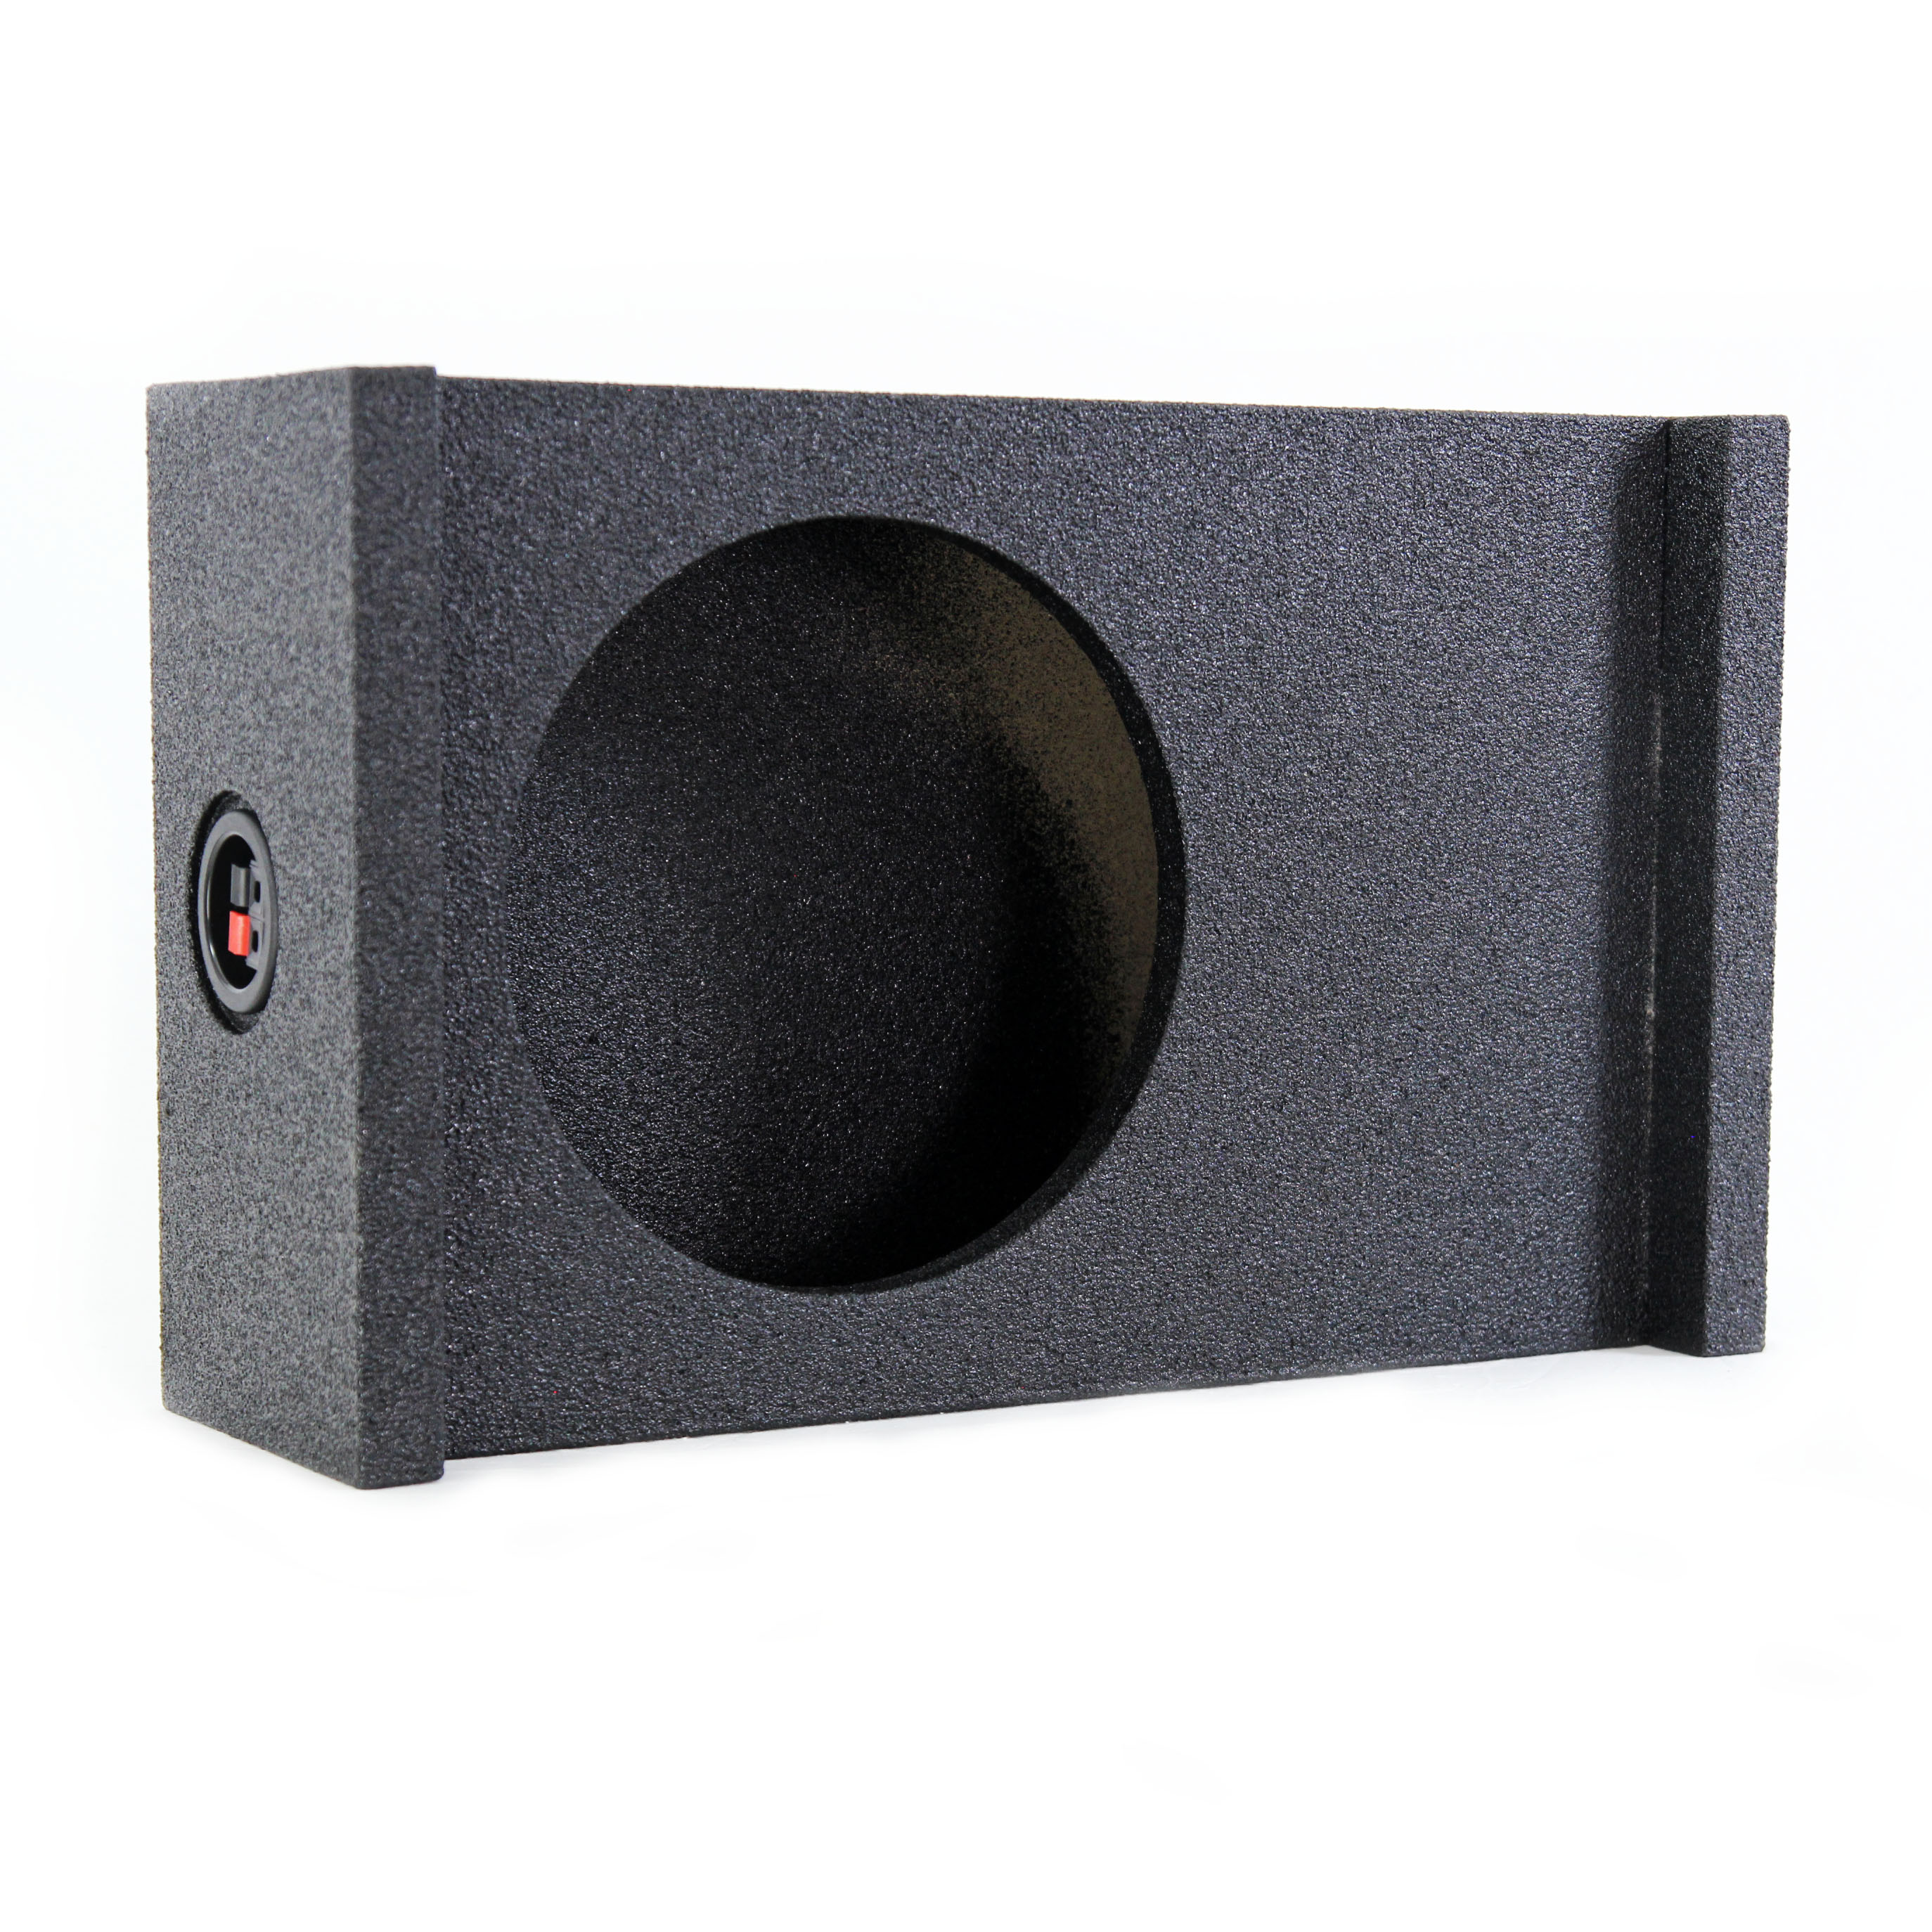 Q-Power Single 10-Inch Universal Downfire/Behind Seat Sub Box | QBSHALLOW10 DF